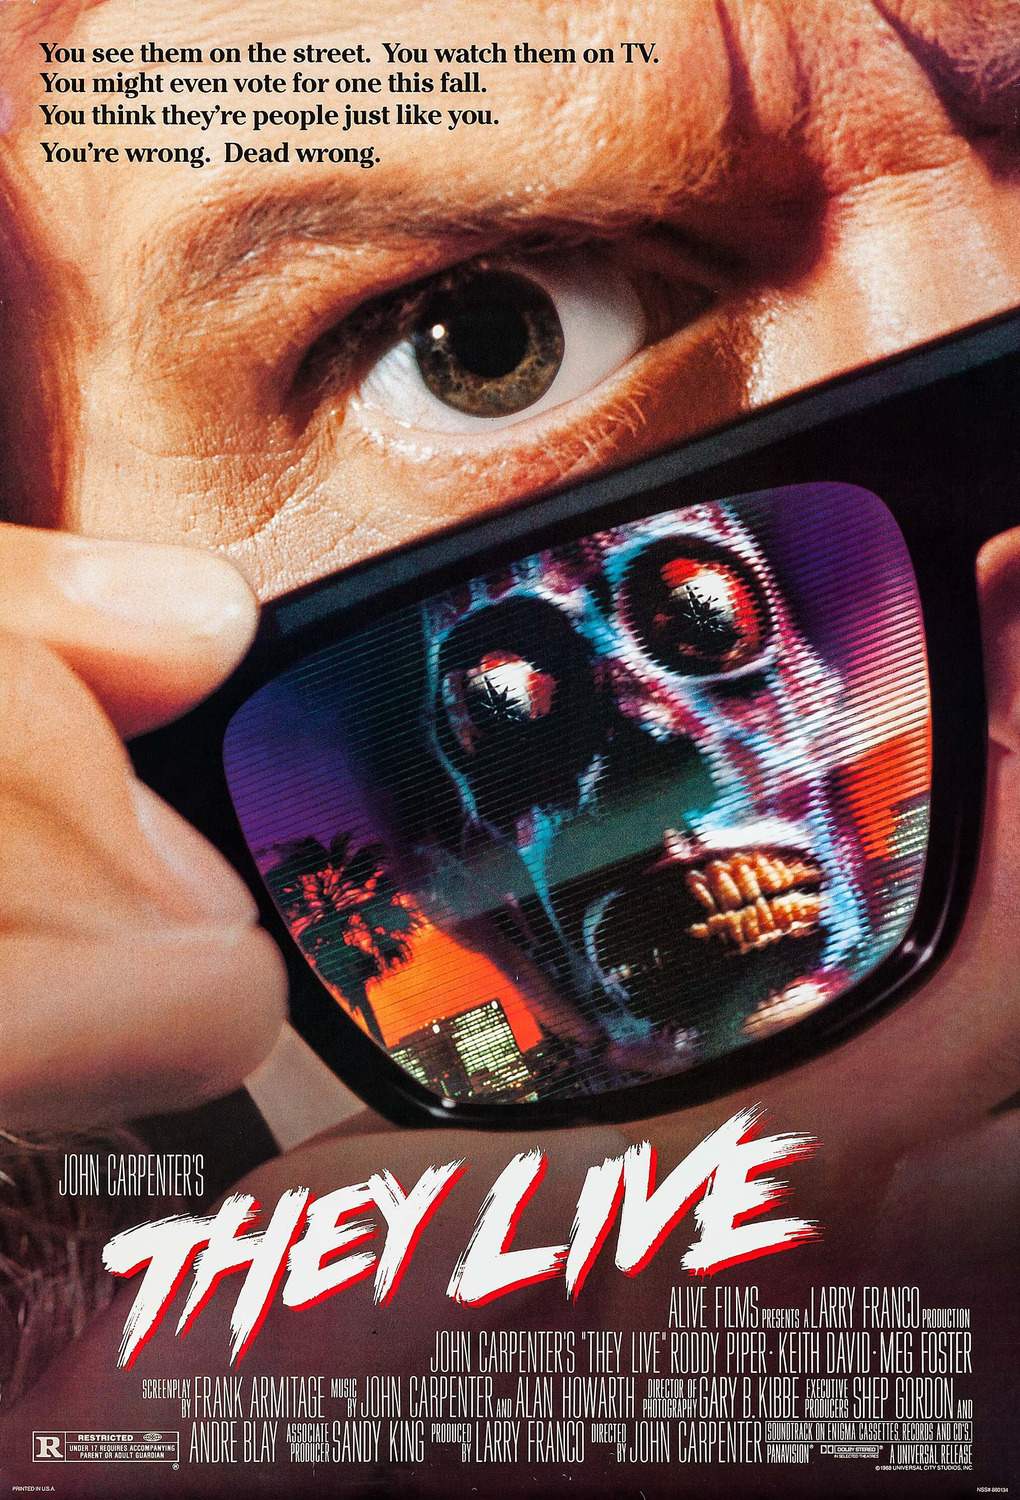 Extra Large Movie Poster Image for They Live